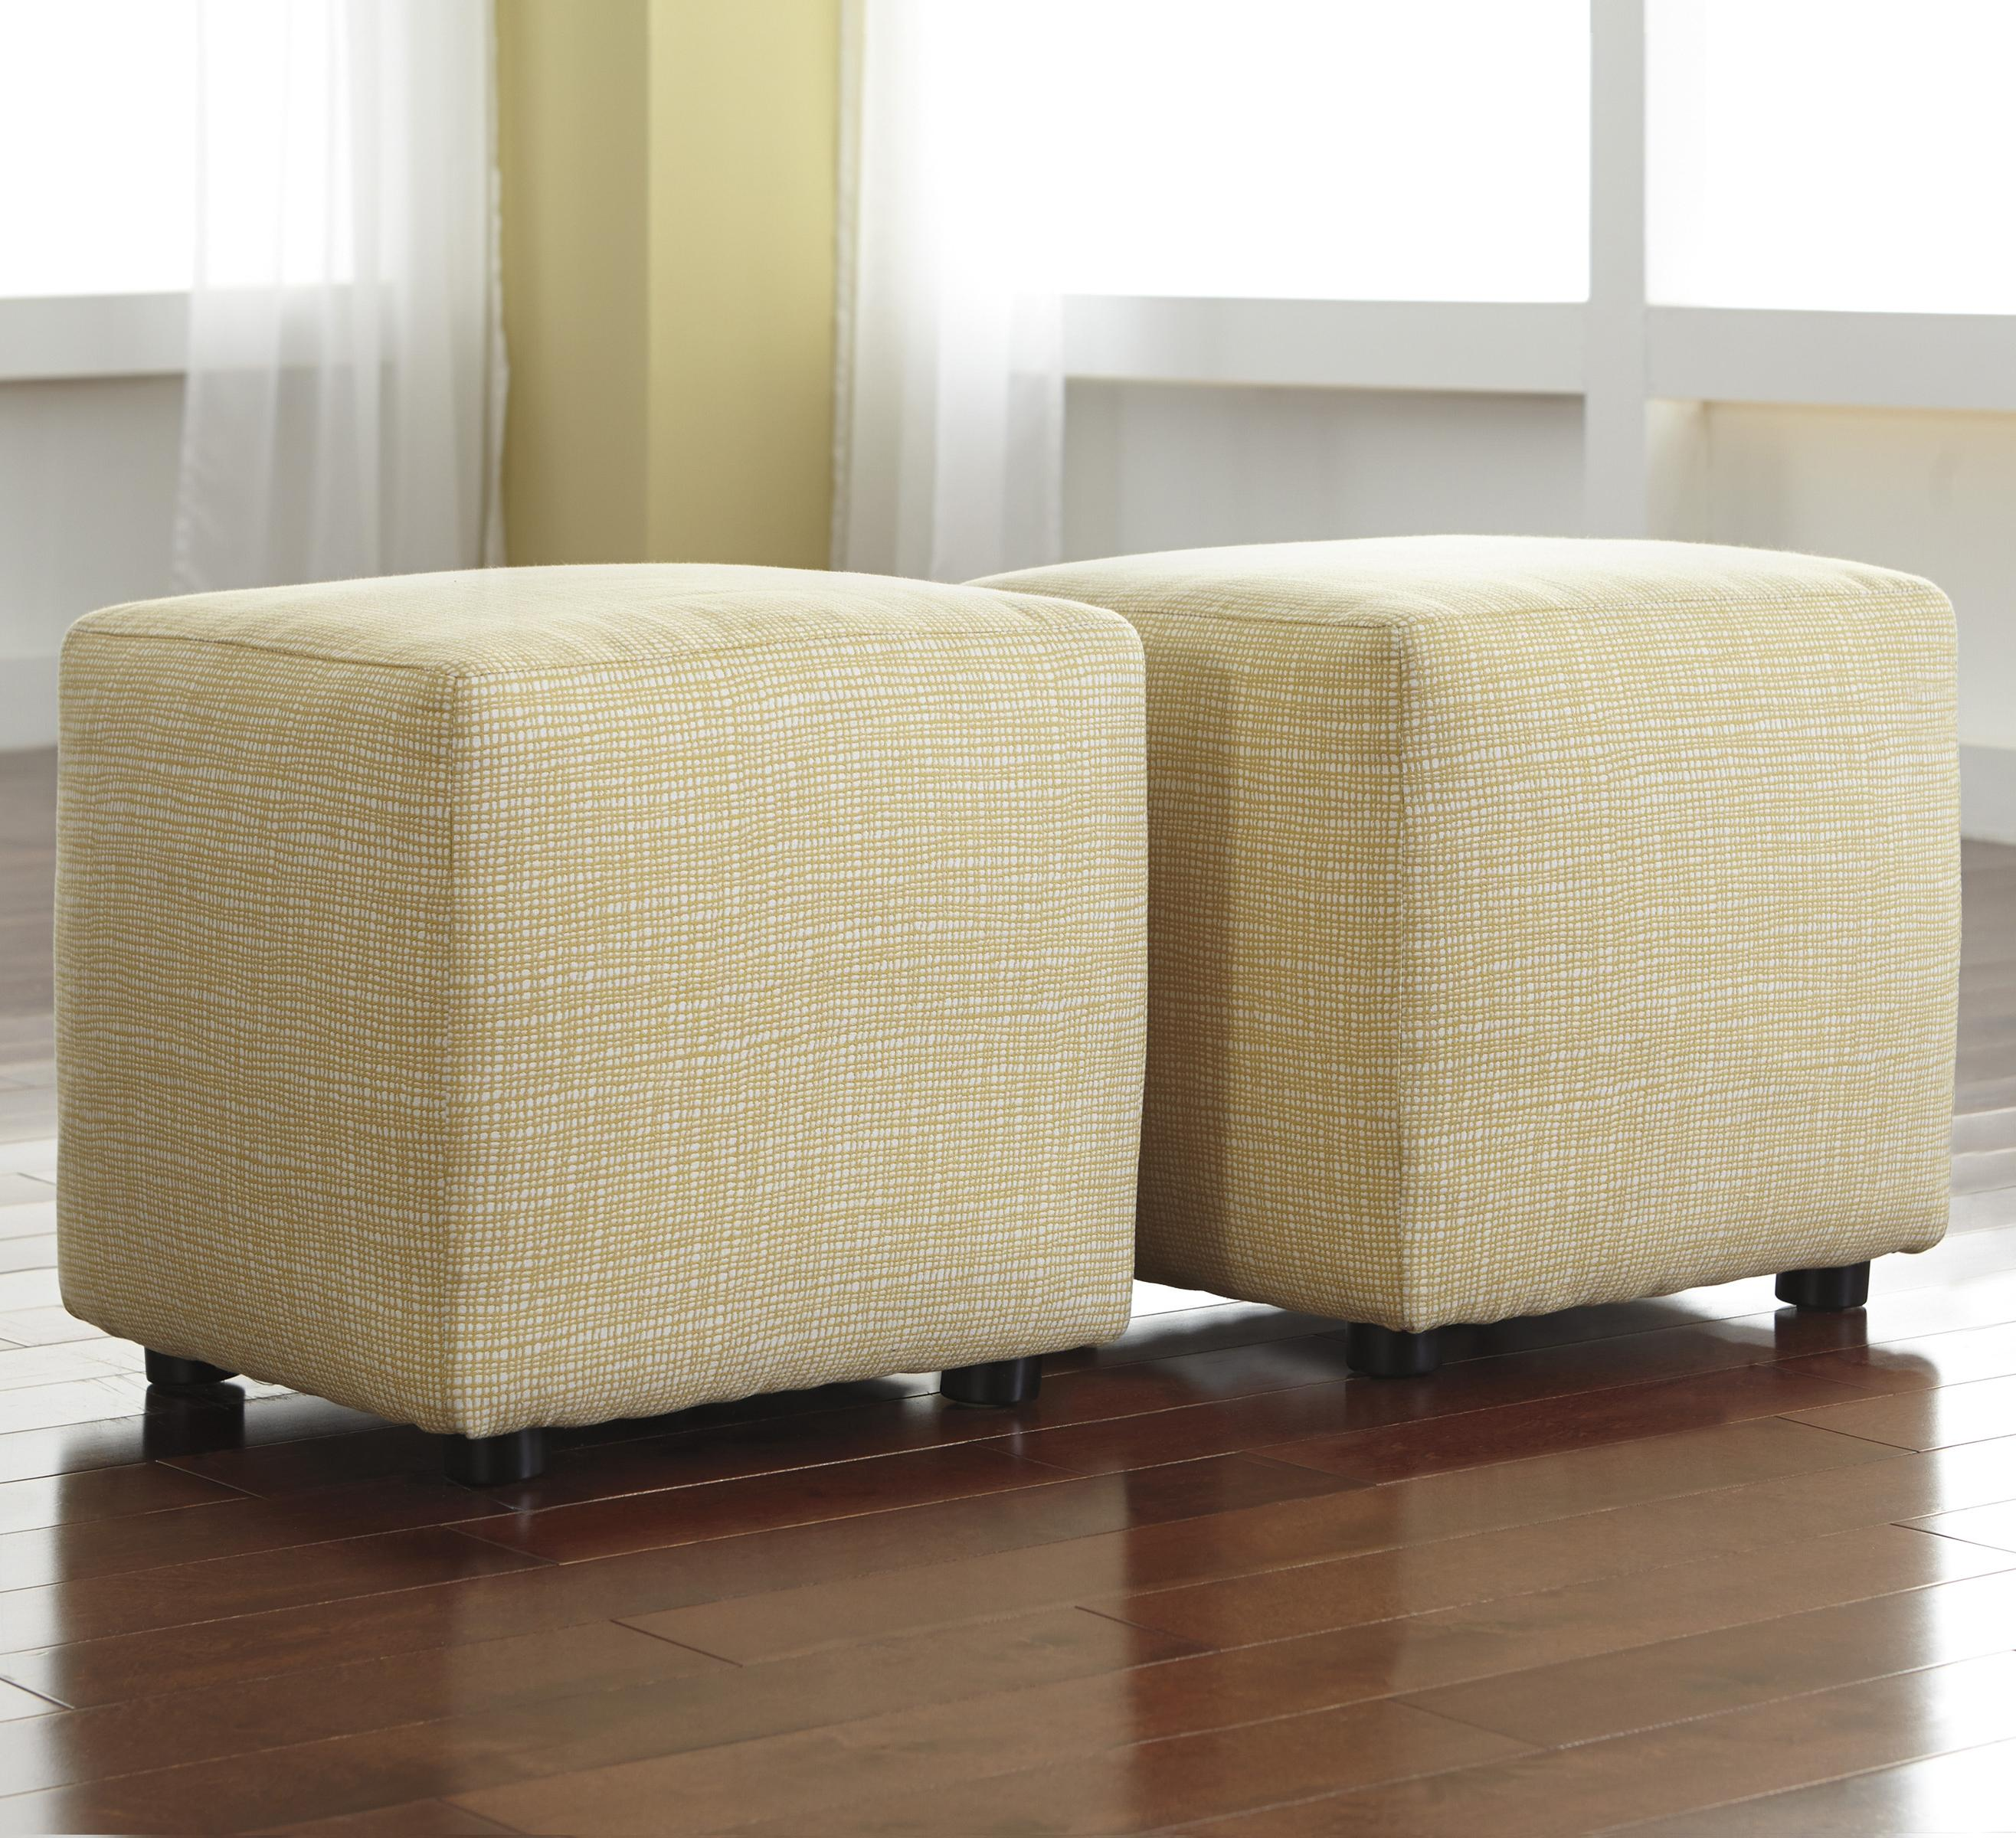 Signature Design by Ashley Chamberly - Alloy Set of 2 Cube Ottomans - Item Number: 2430213